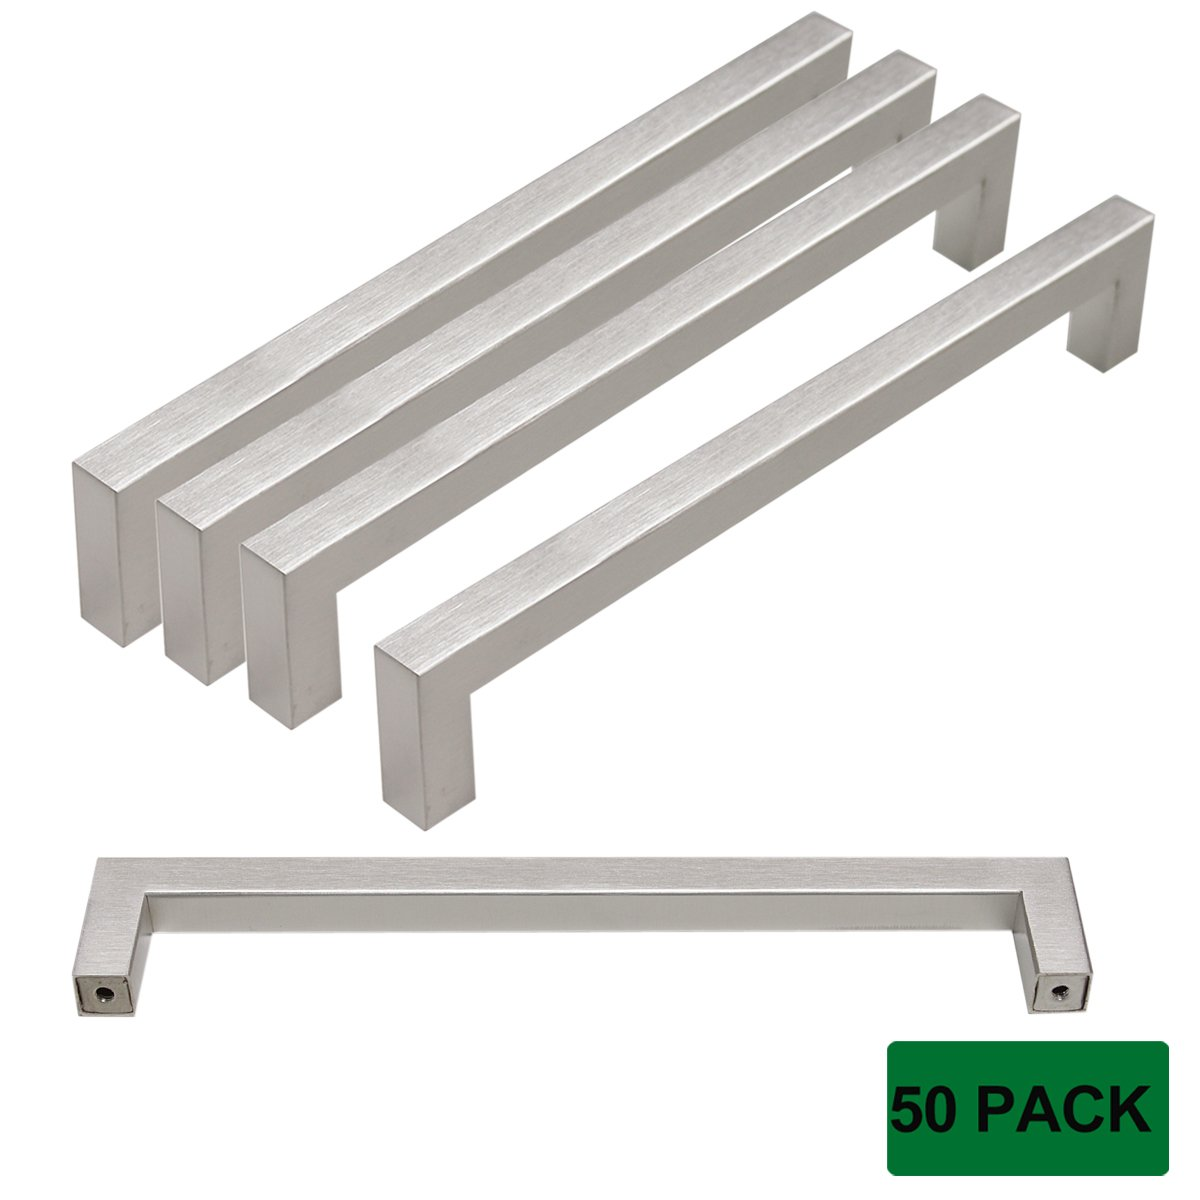 Probrico Kitchen Cabinet Drawer Handles Stainless Steel 7-3/5 Inch Hole Spacing Brushed Nickel Pulls 8 Inch Total Length 50 Pack